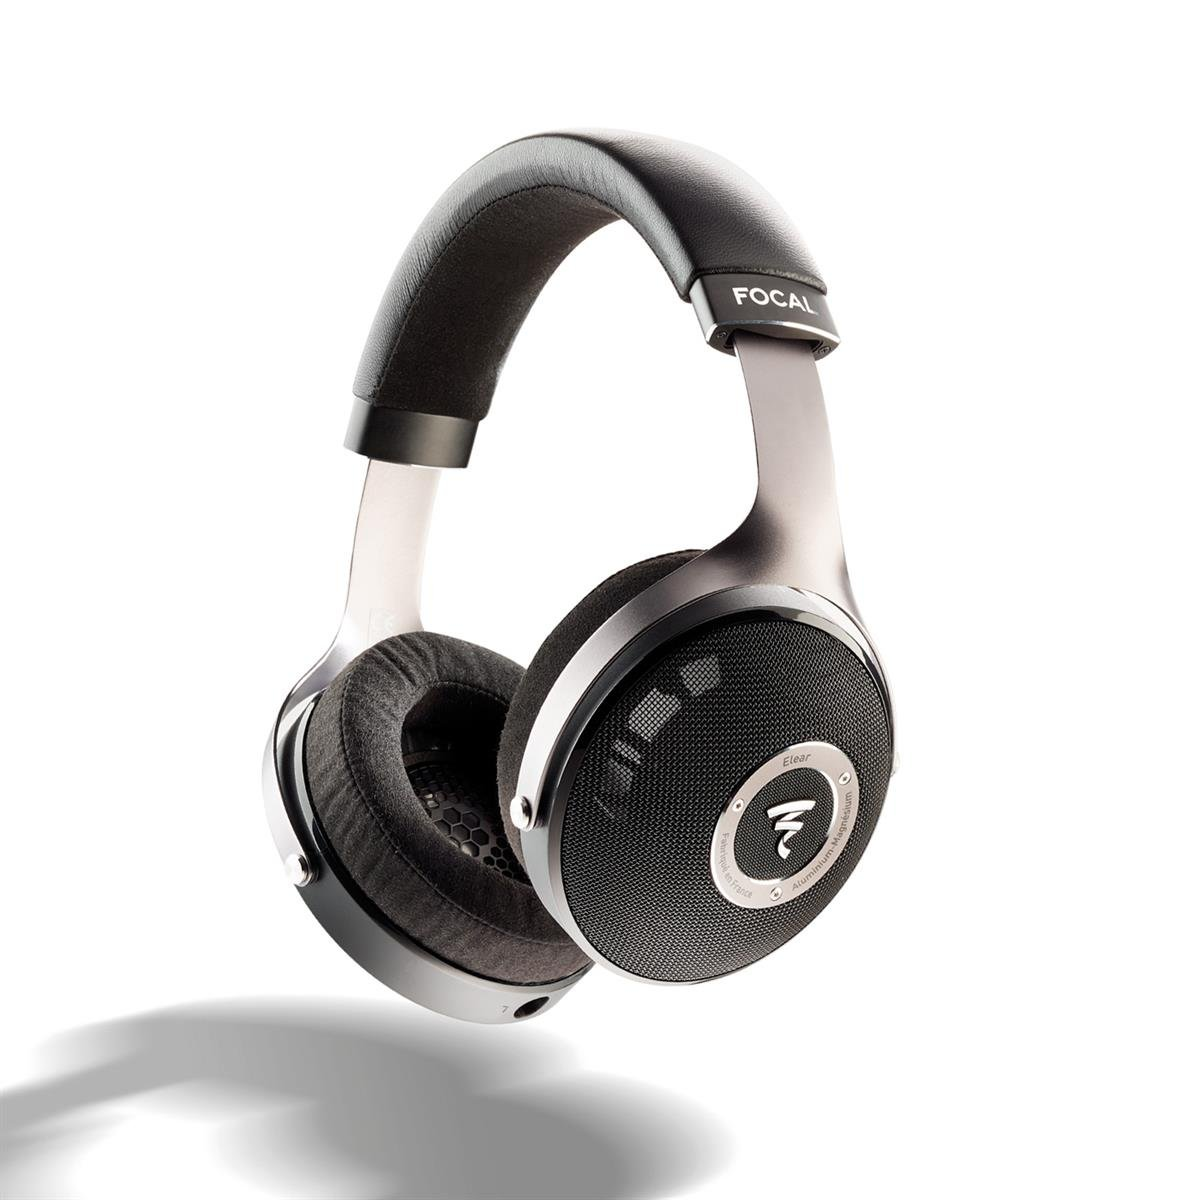 Focal - Elear Headphones by Focal